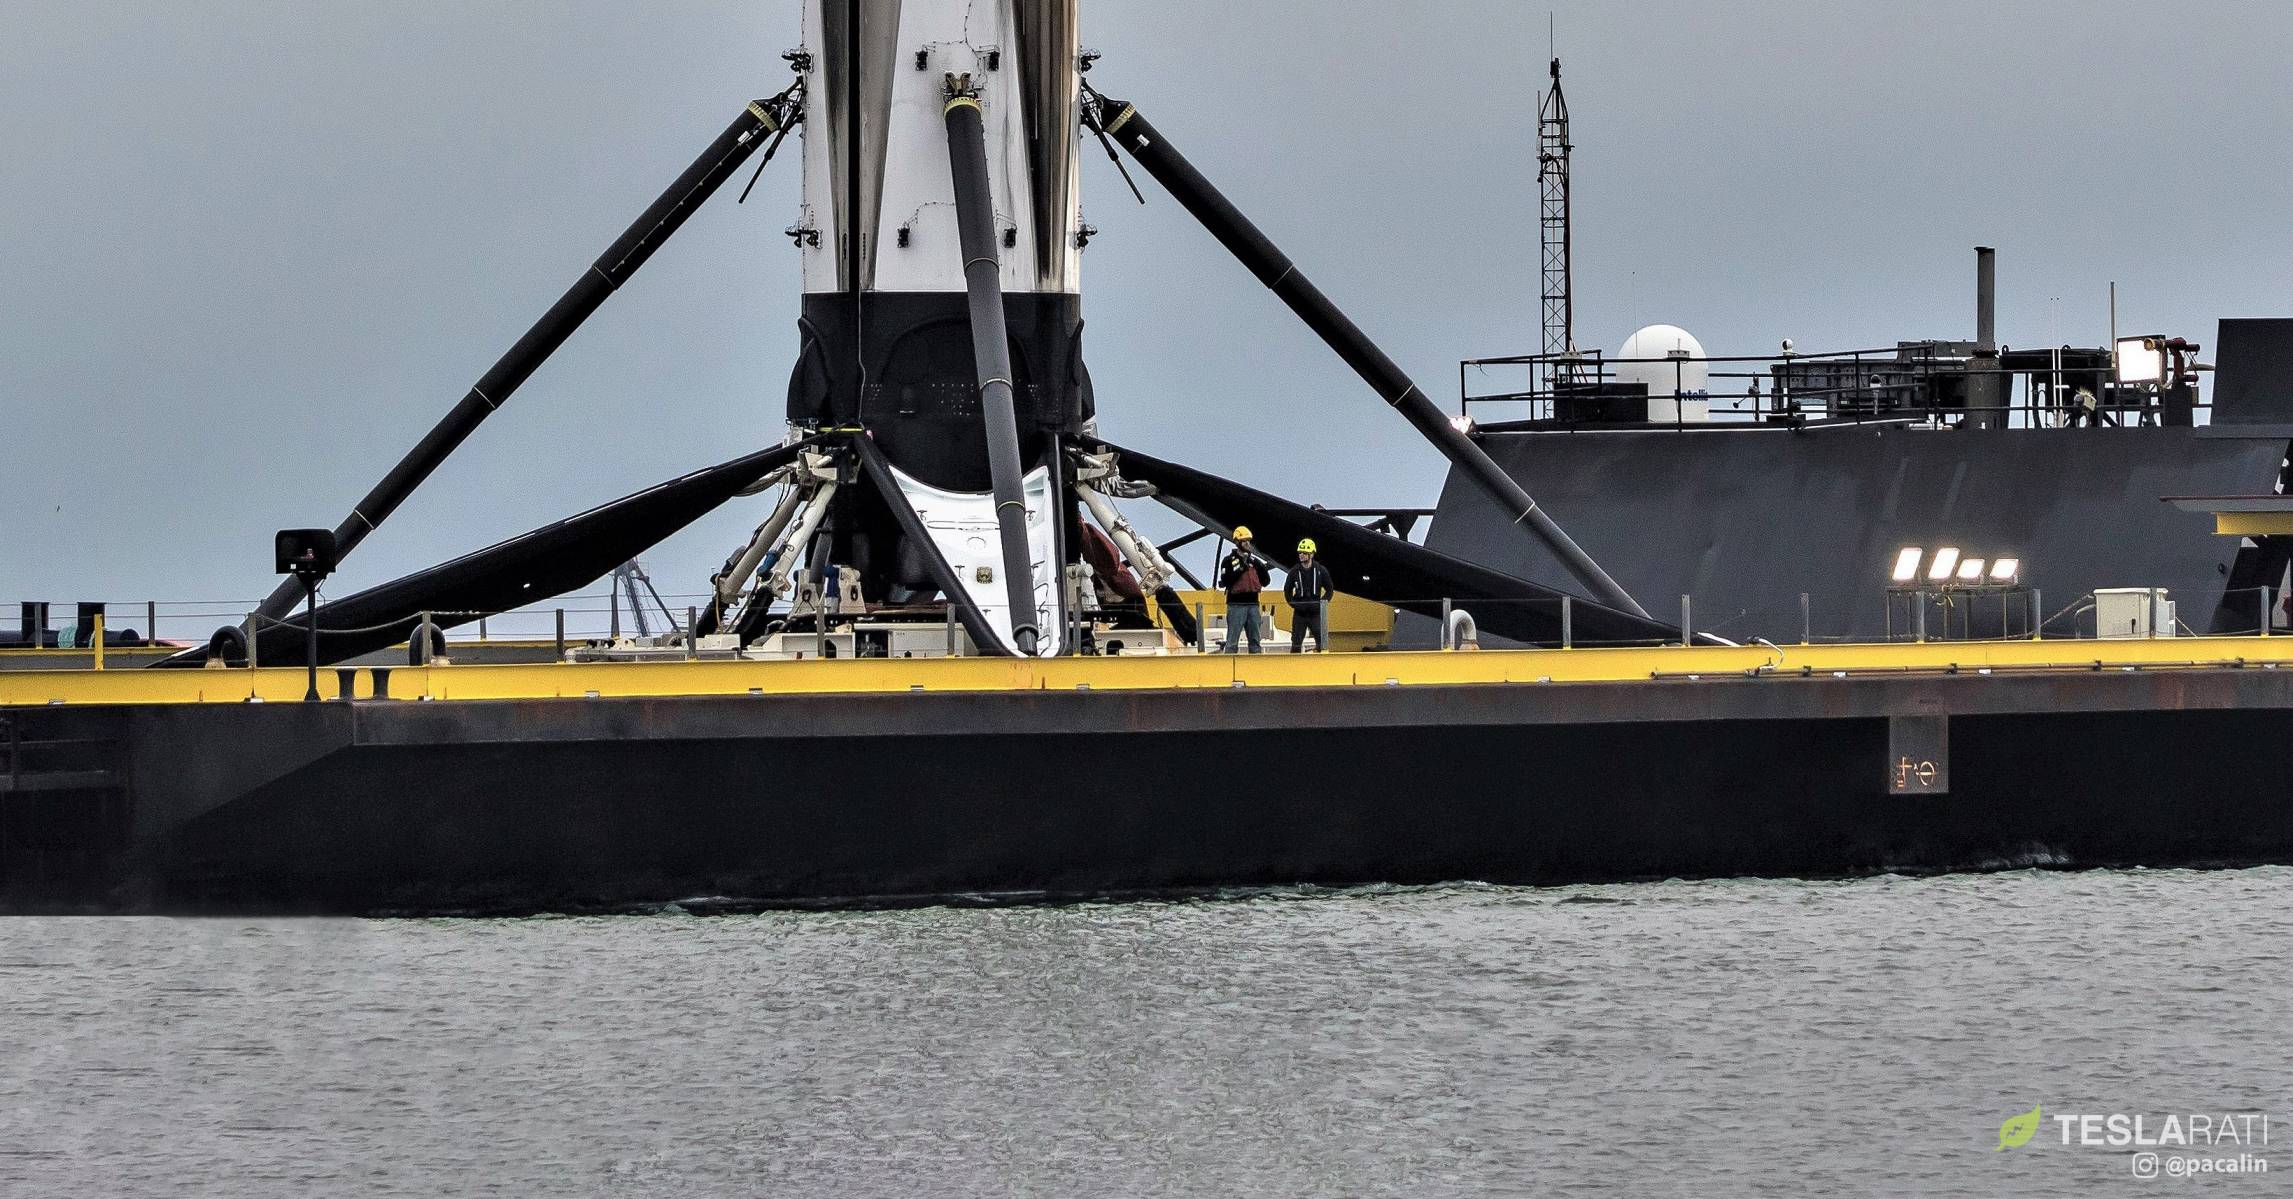 Falcon 9 B1051 DM-1 OCISLY recovery 030519 (Pauline Acalin) 12 crop 2 (c)